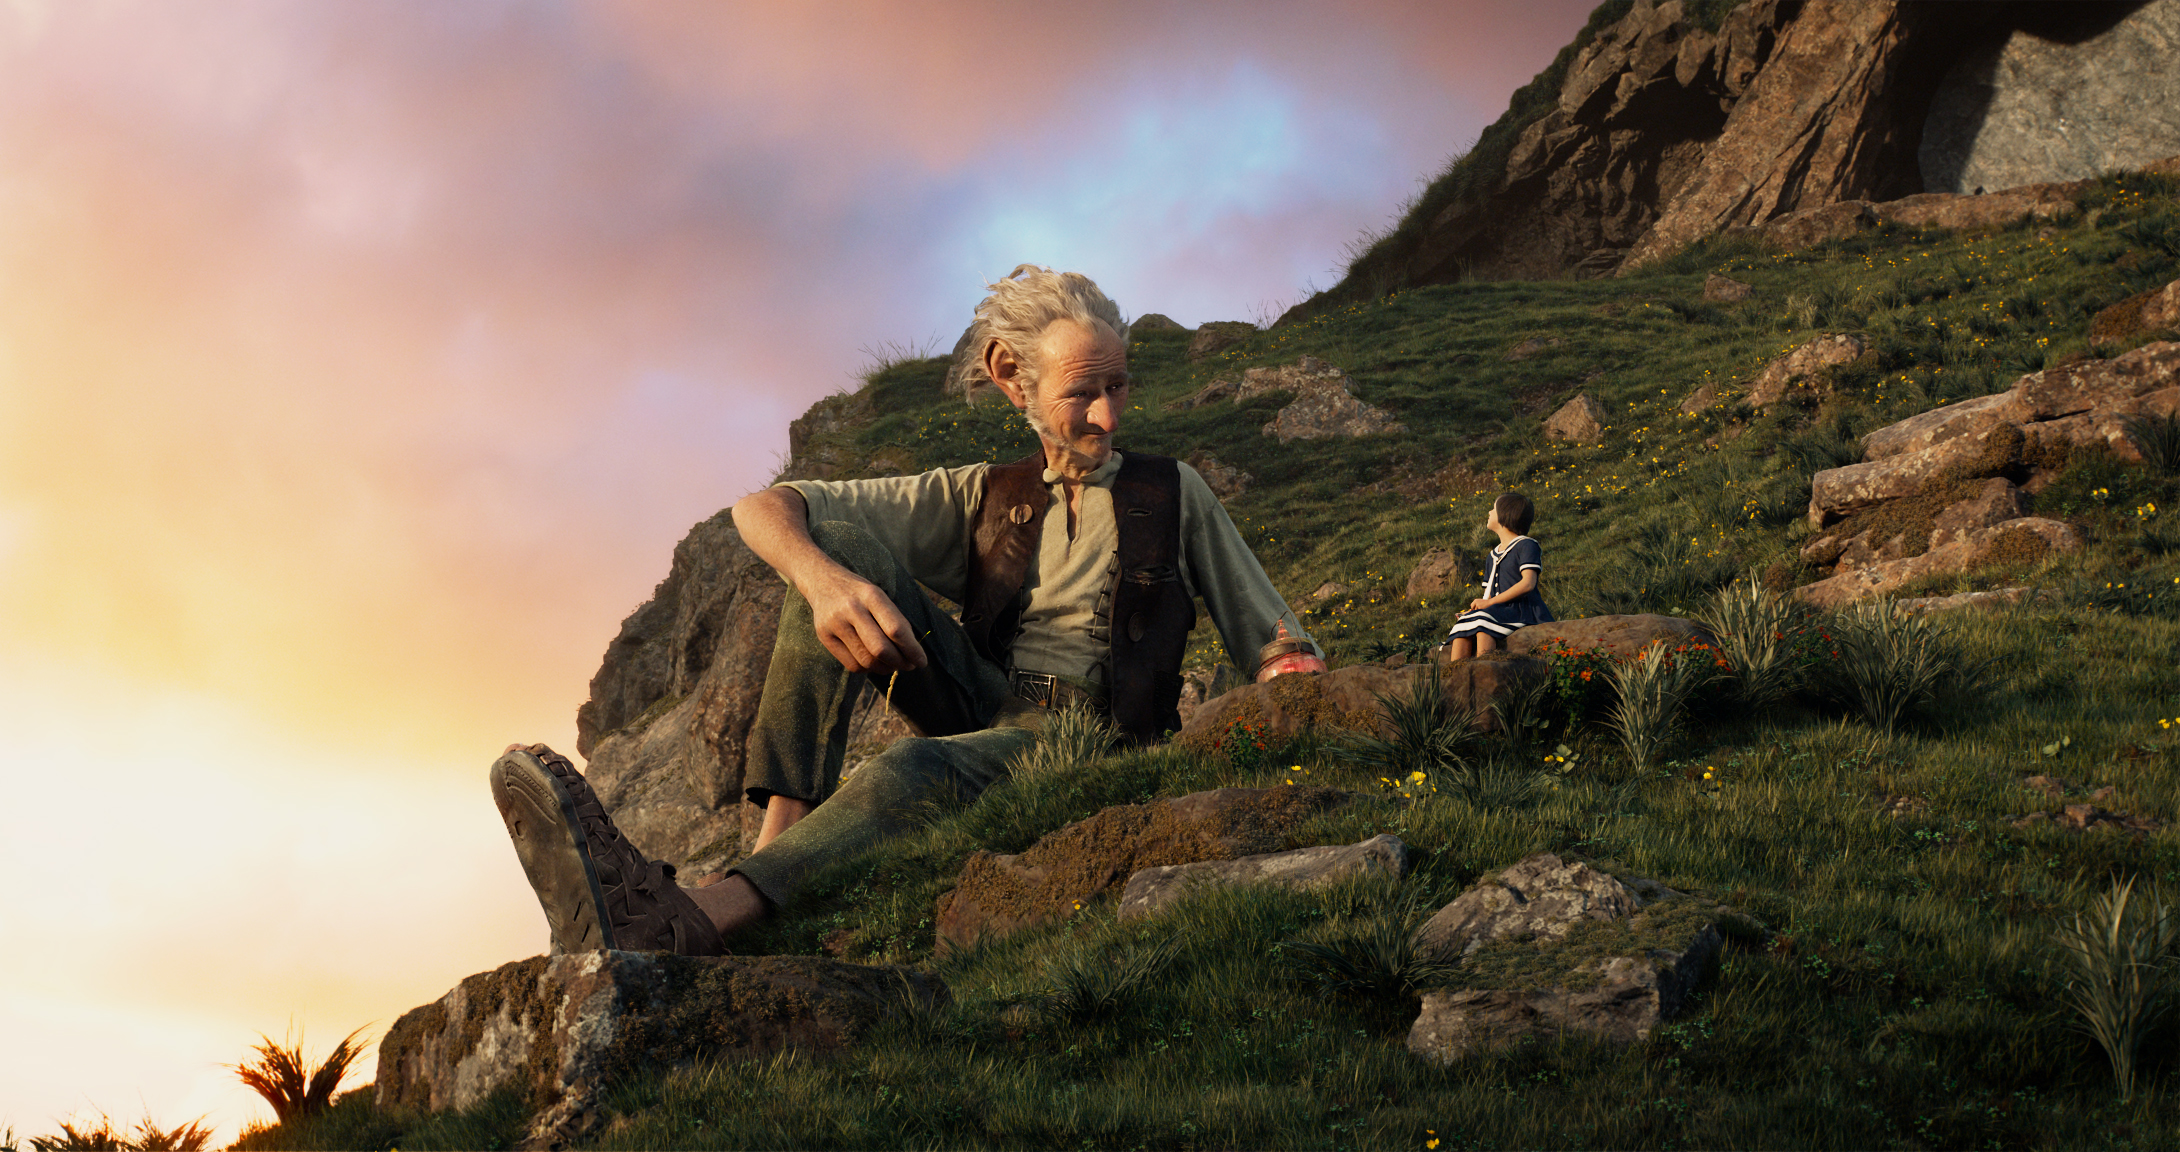 Disney's THE BFG is the imaginative story of a young girl named Sophie (Ruby Barnhill) and the Big Friendly Giant (Oscar (TM) winner Mark Rylance) who introduces her to the wonders and perils of Giant Country   Directed by Steven Spielberg, the film is based on the beloved book by Roald Dahl.